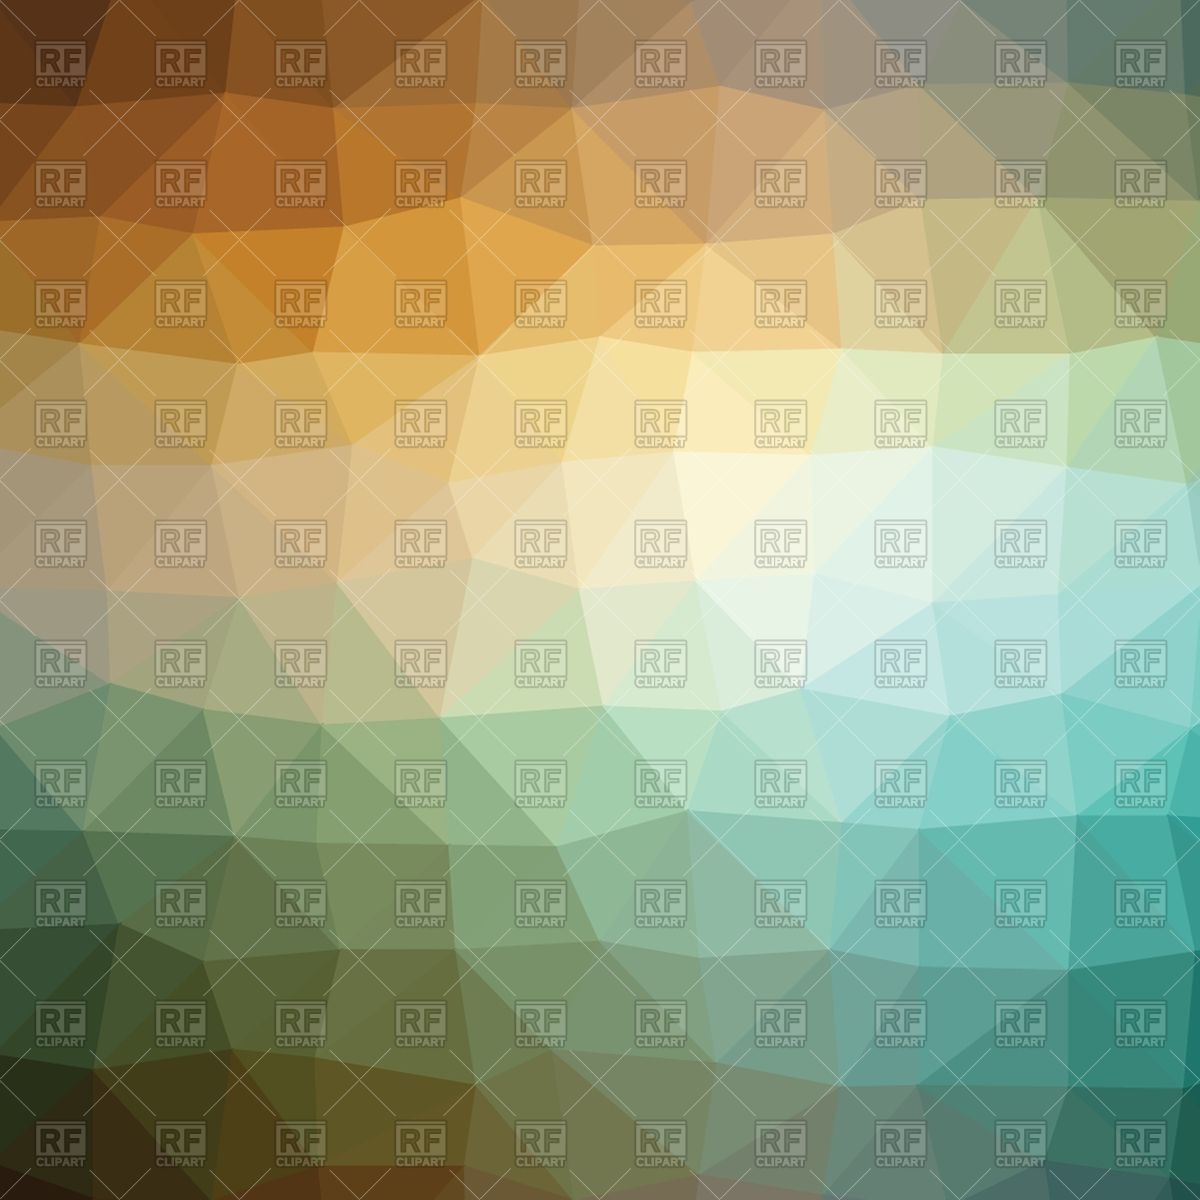 Polygonal abstract brown and blue background Vector Image #62179.